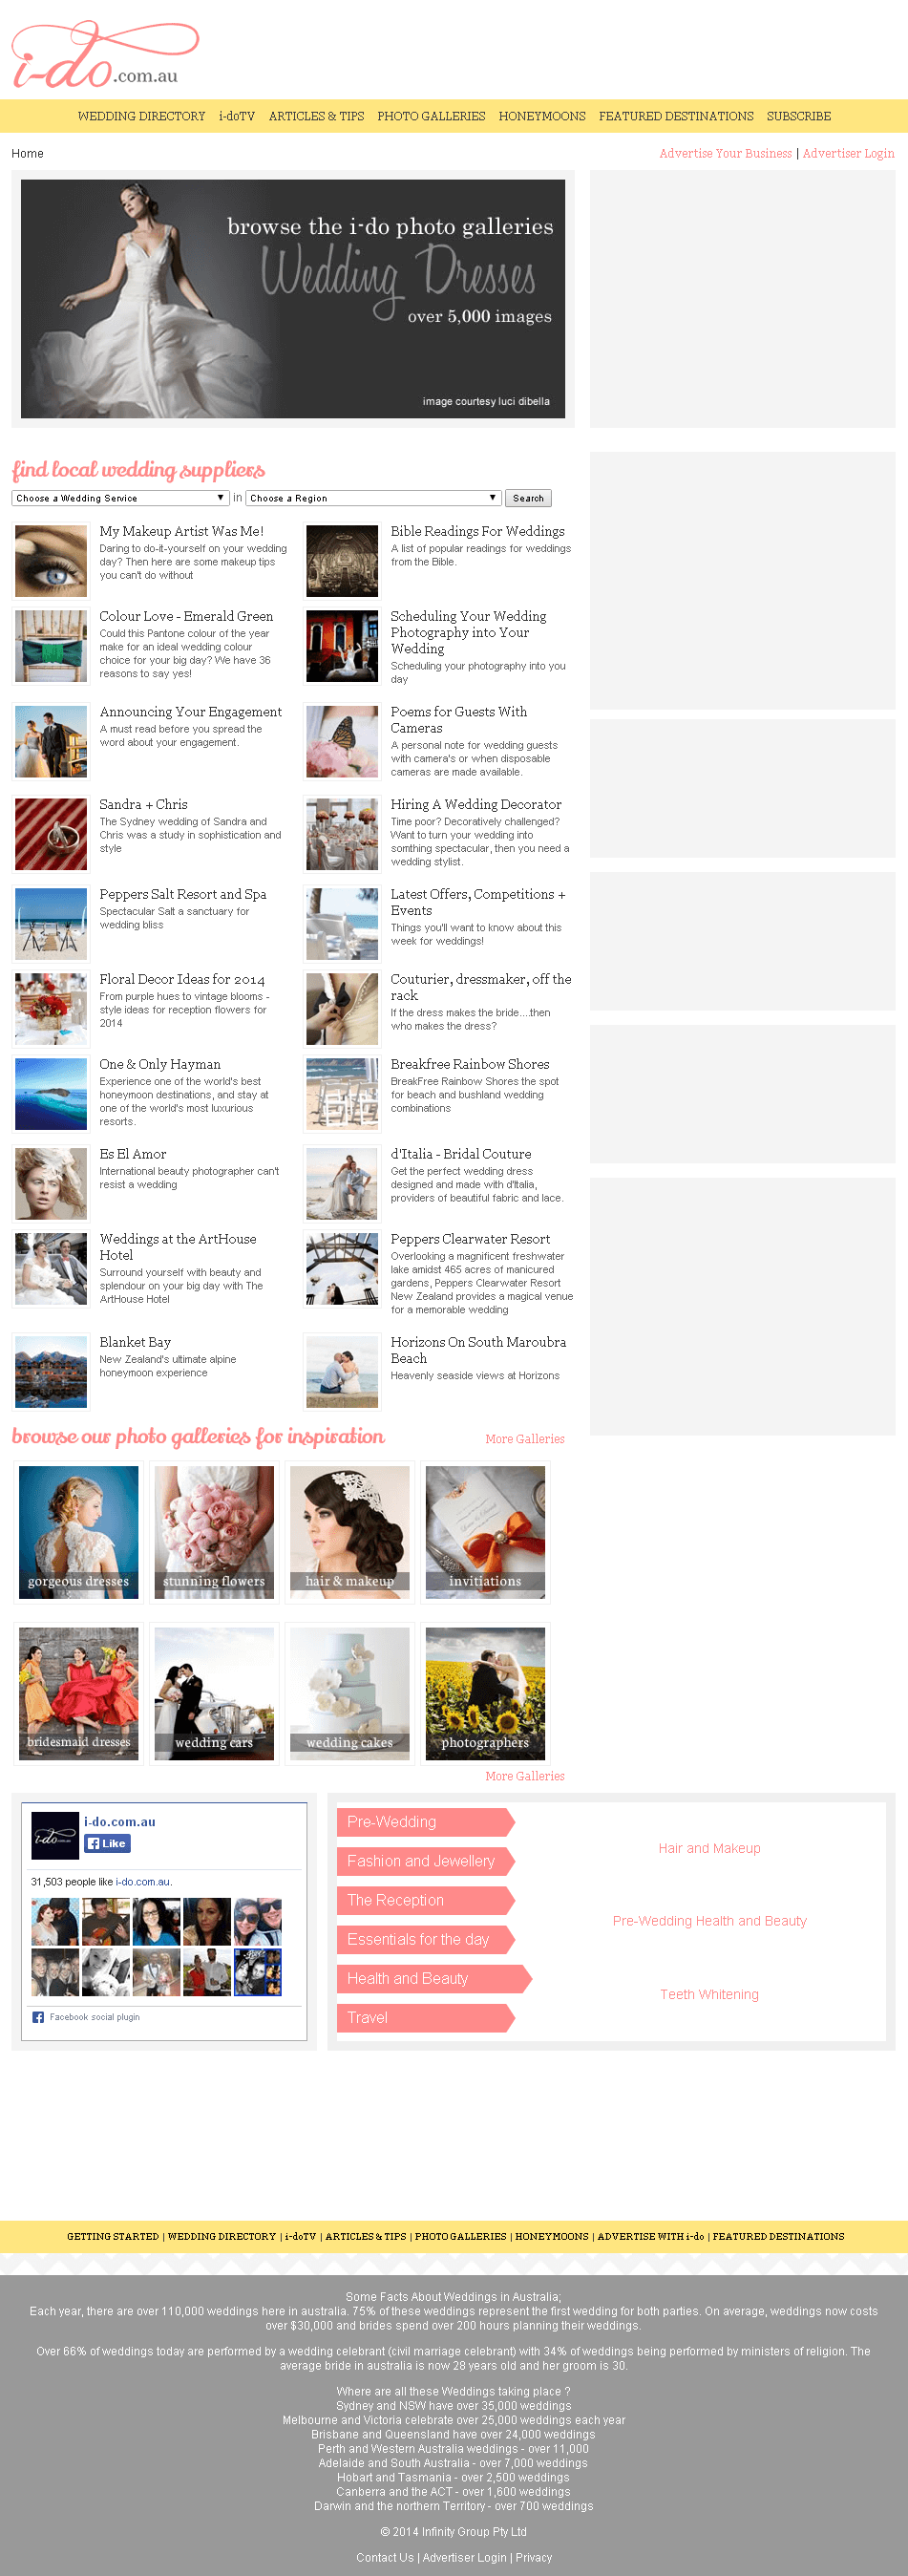 Website for Wedding Services Provider 'i-do' Using Dot Net